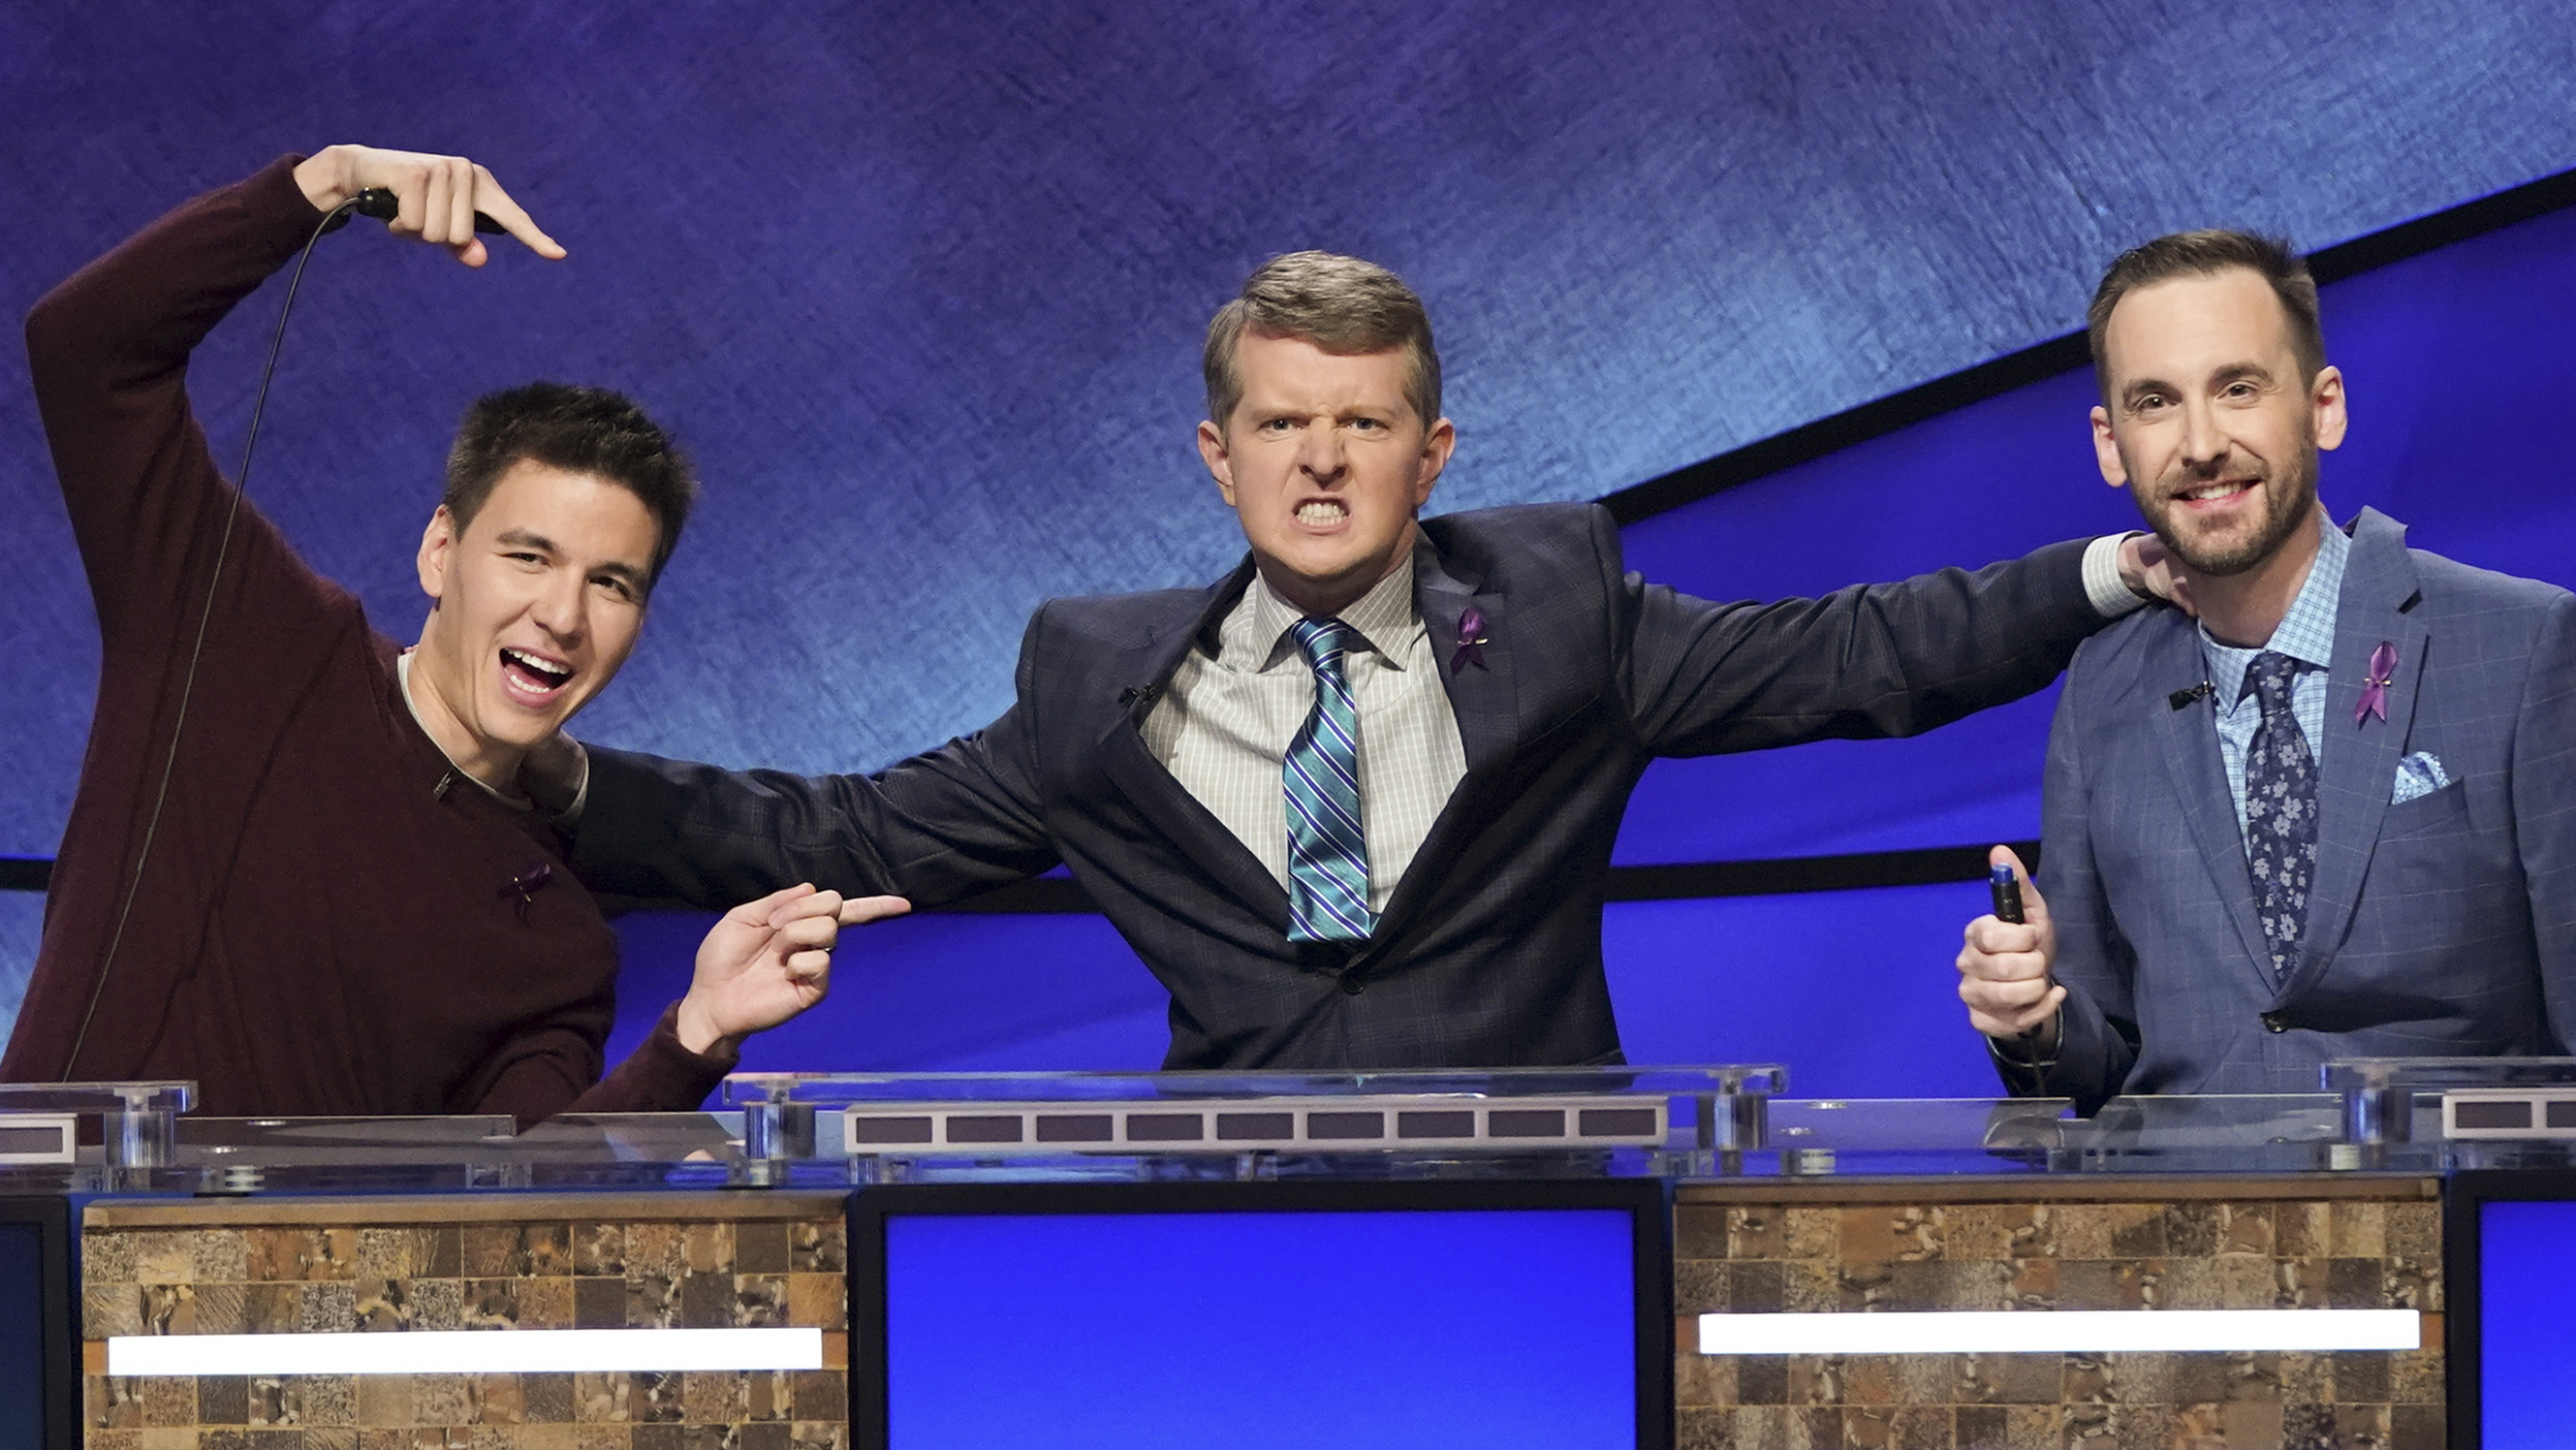 'Jeopardy!' champ Ken Jennings will not participate in a rematch